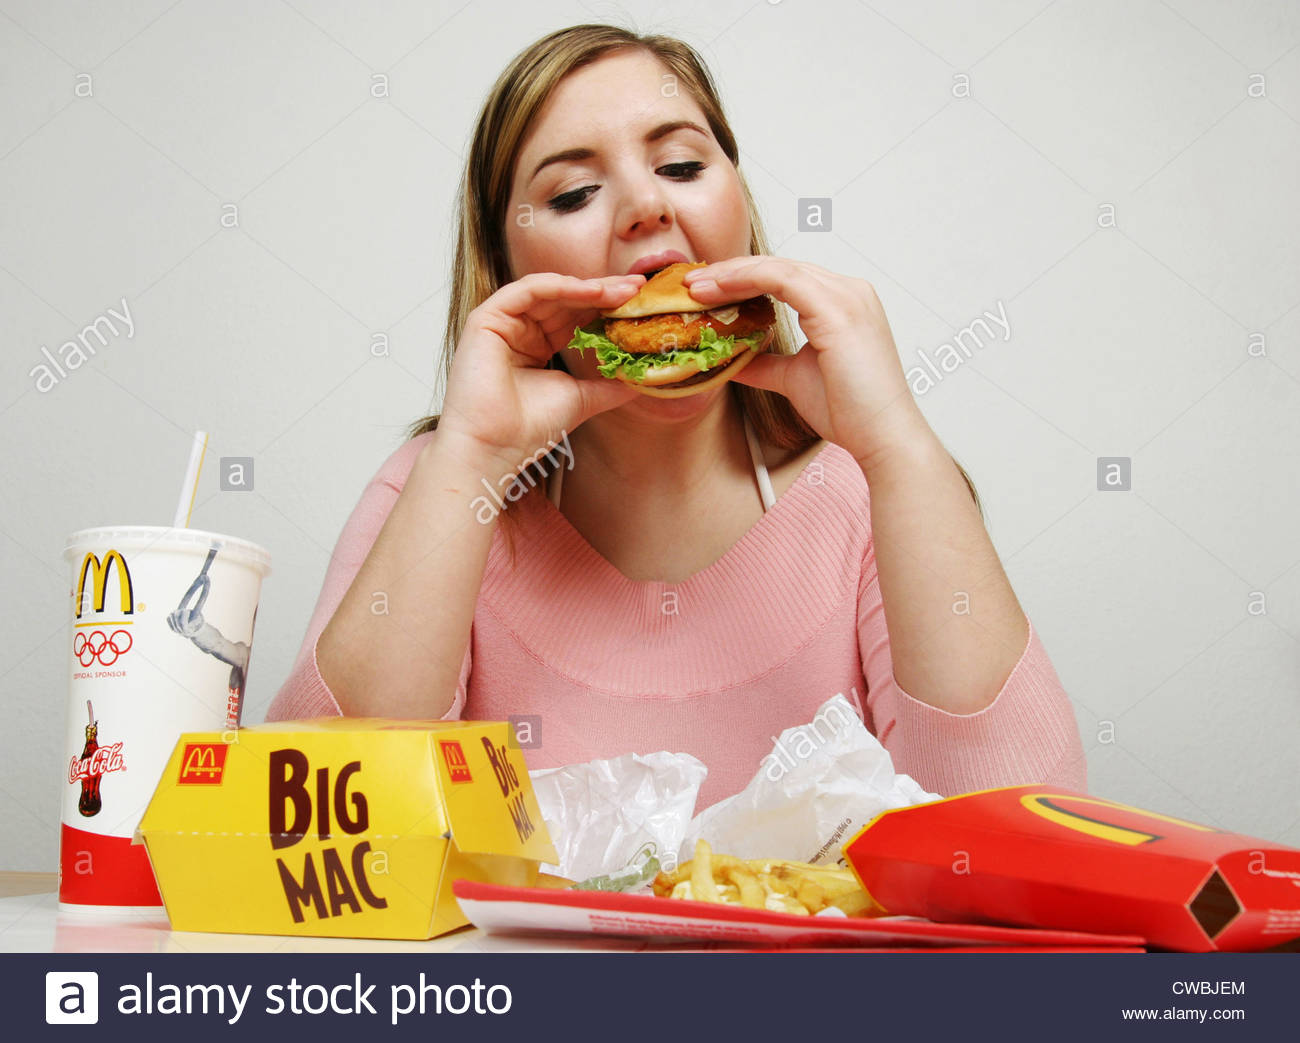 Chubby girl eating